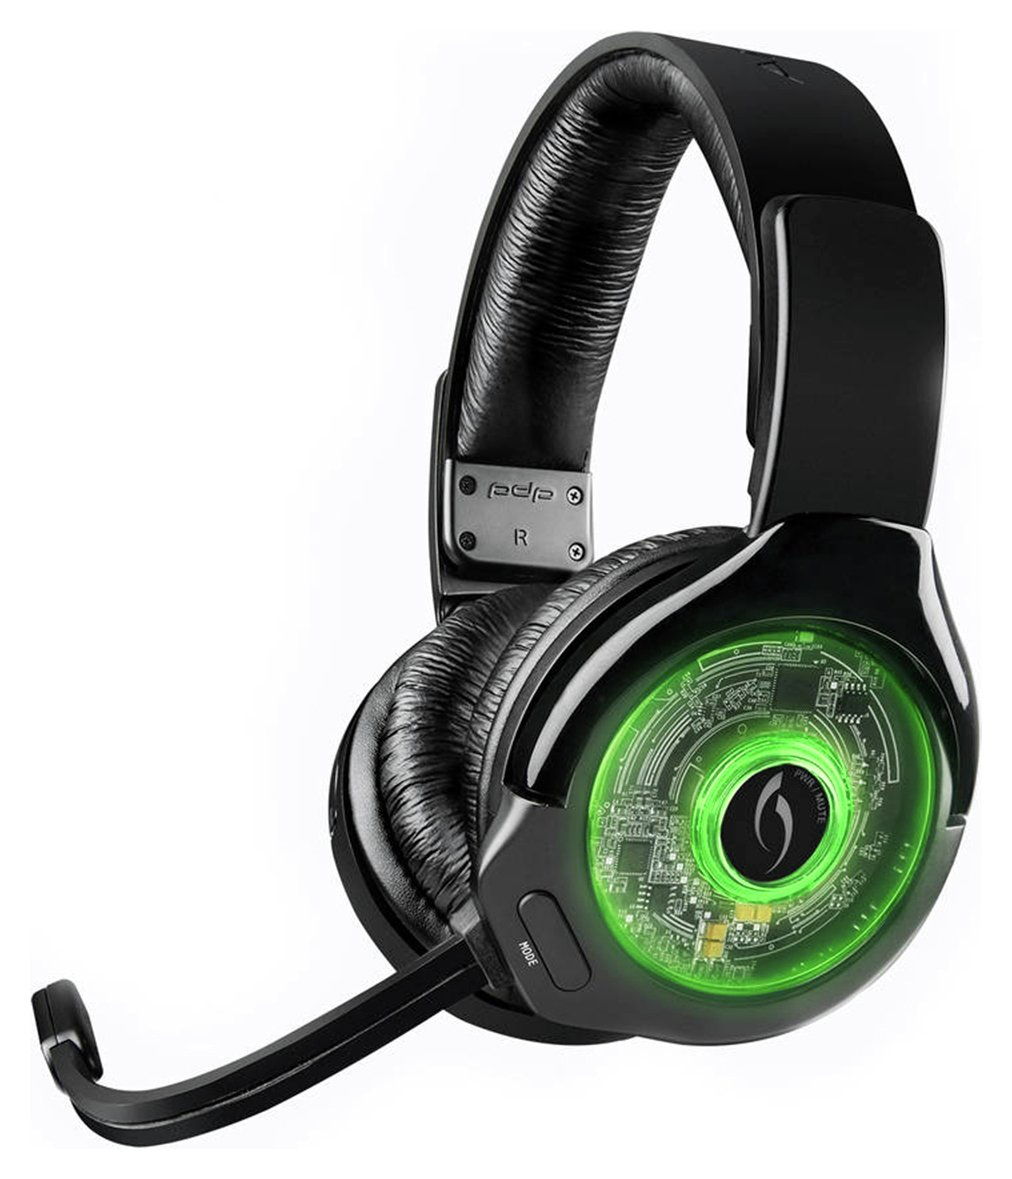 'Afterglow Ag9 Wireless Gaming Headset For Xbox One.